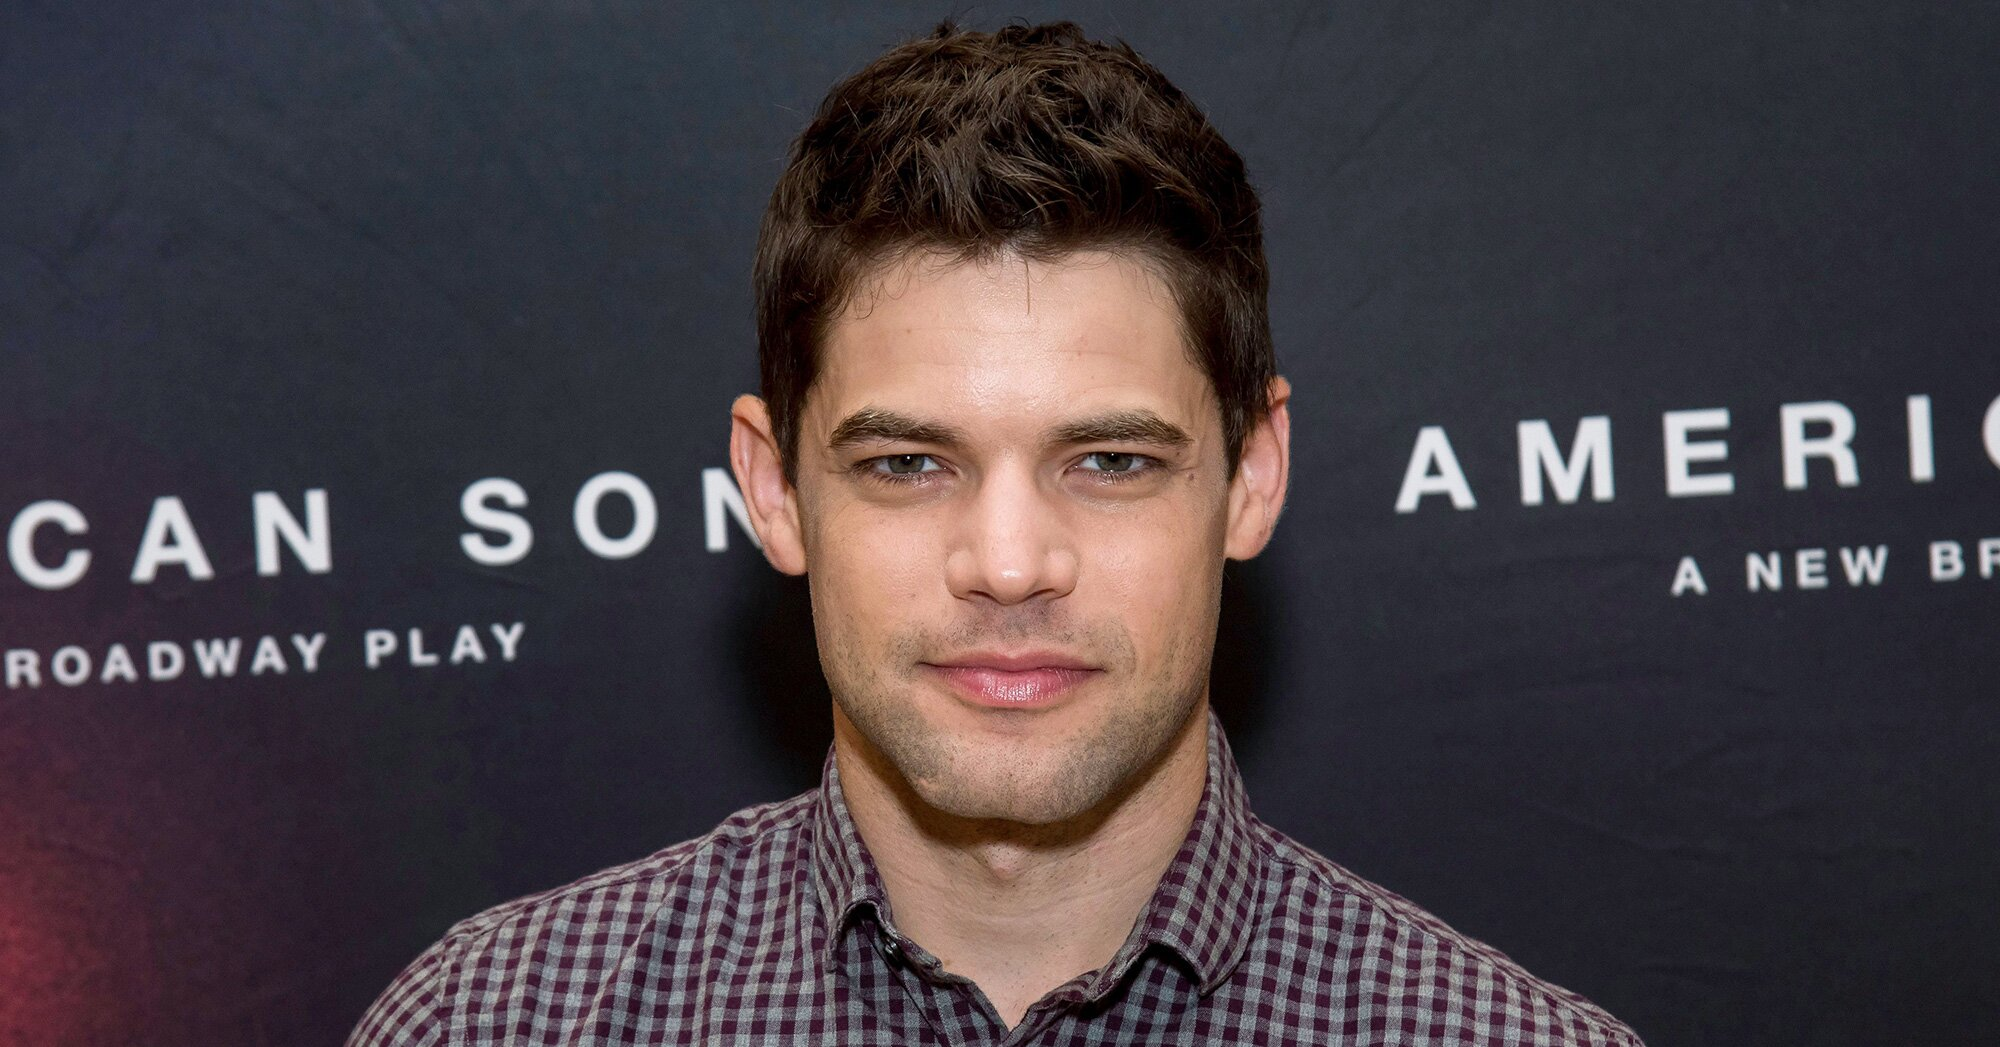 Smash's Jeremy Jordan Reveals 14-Year-Old Nephew Died by Suicide: 'We Are Devastated'